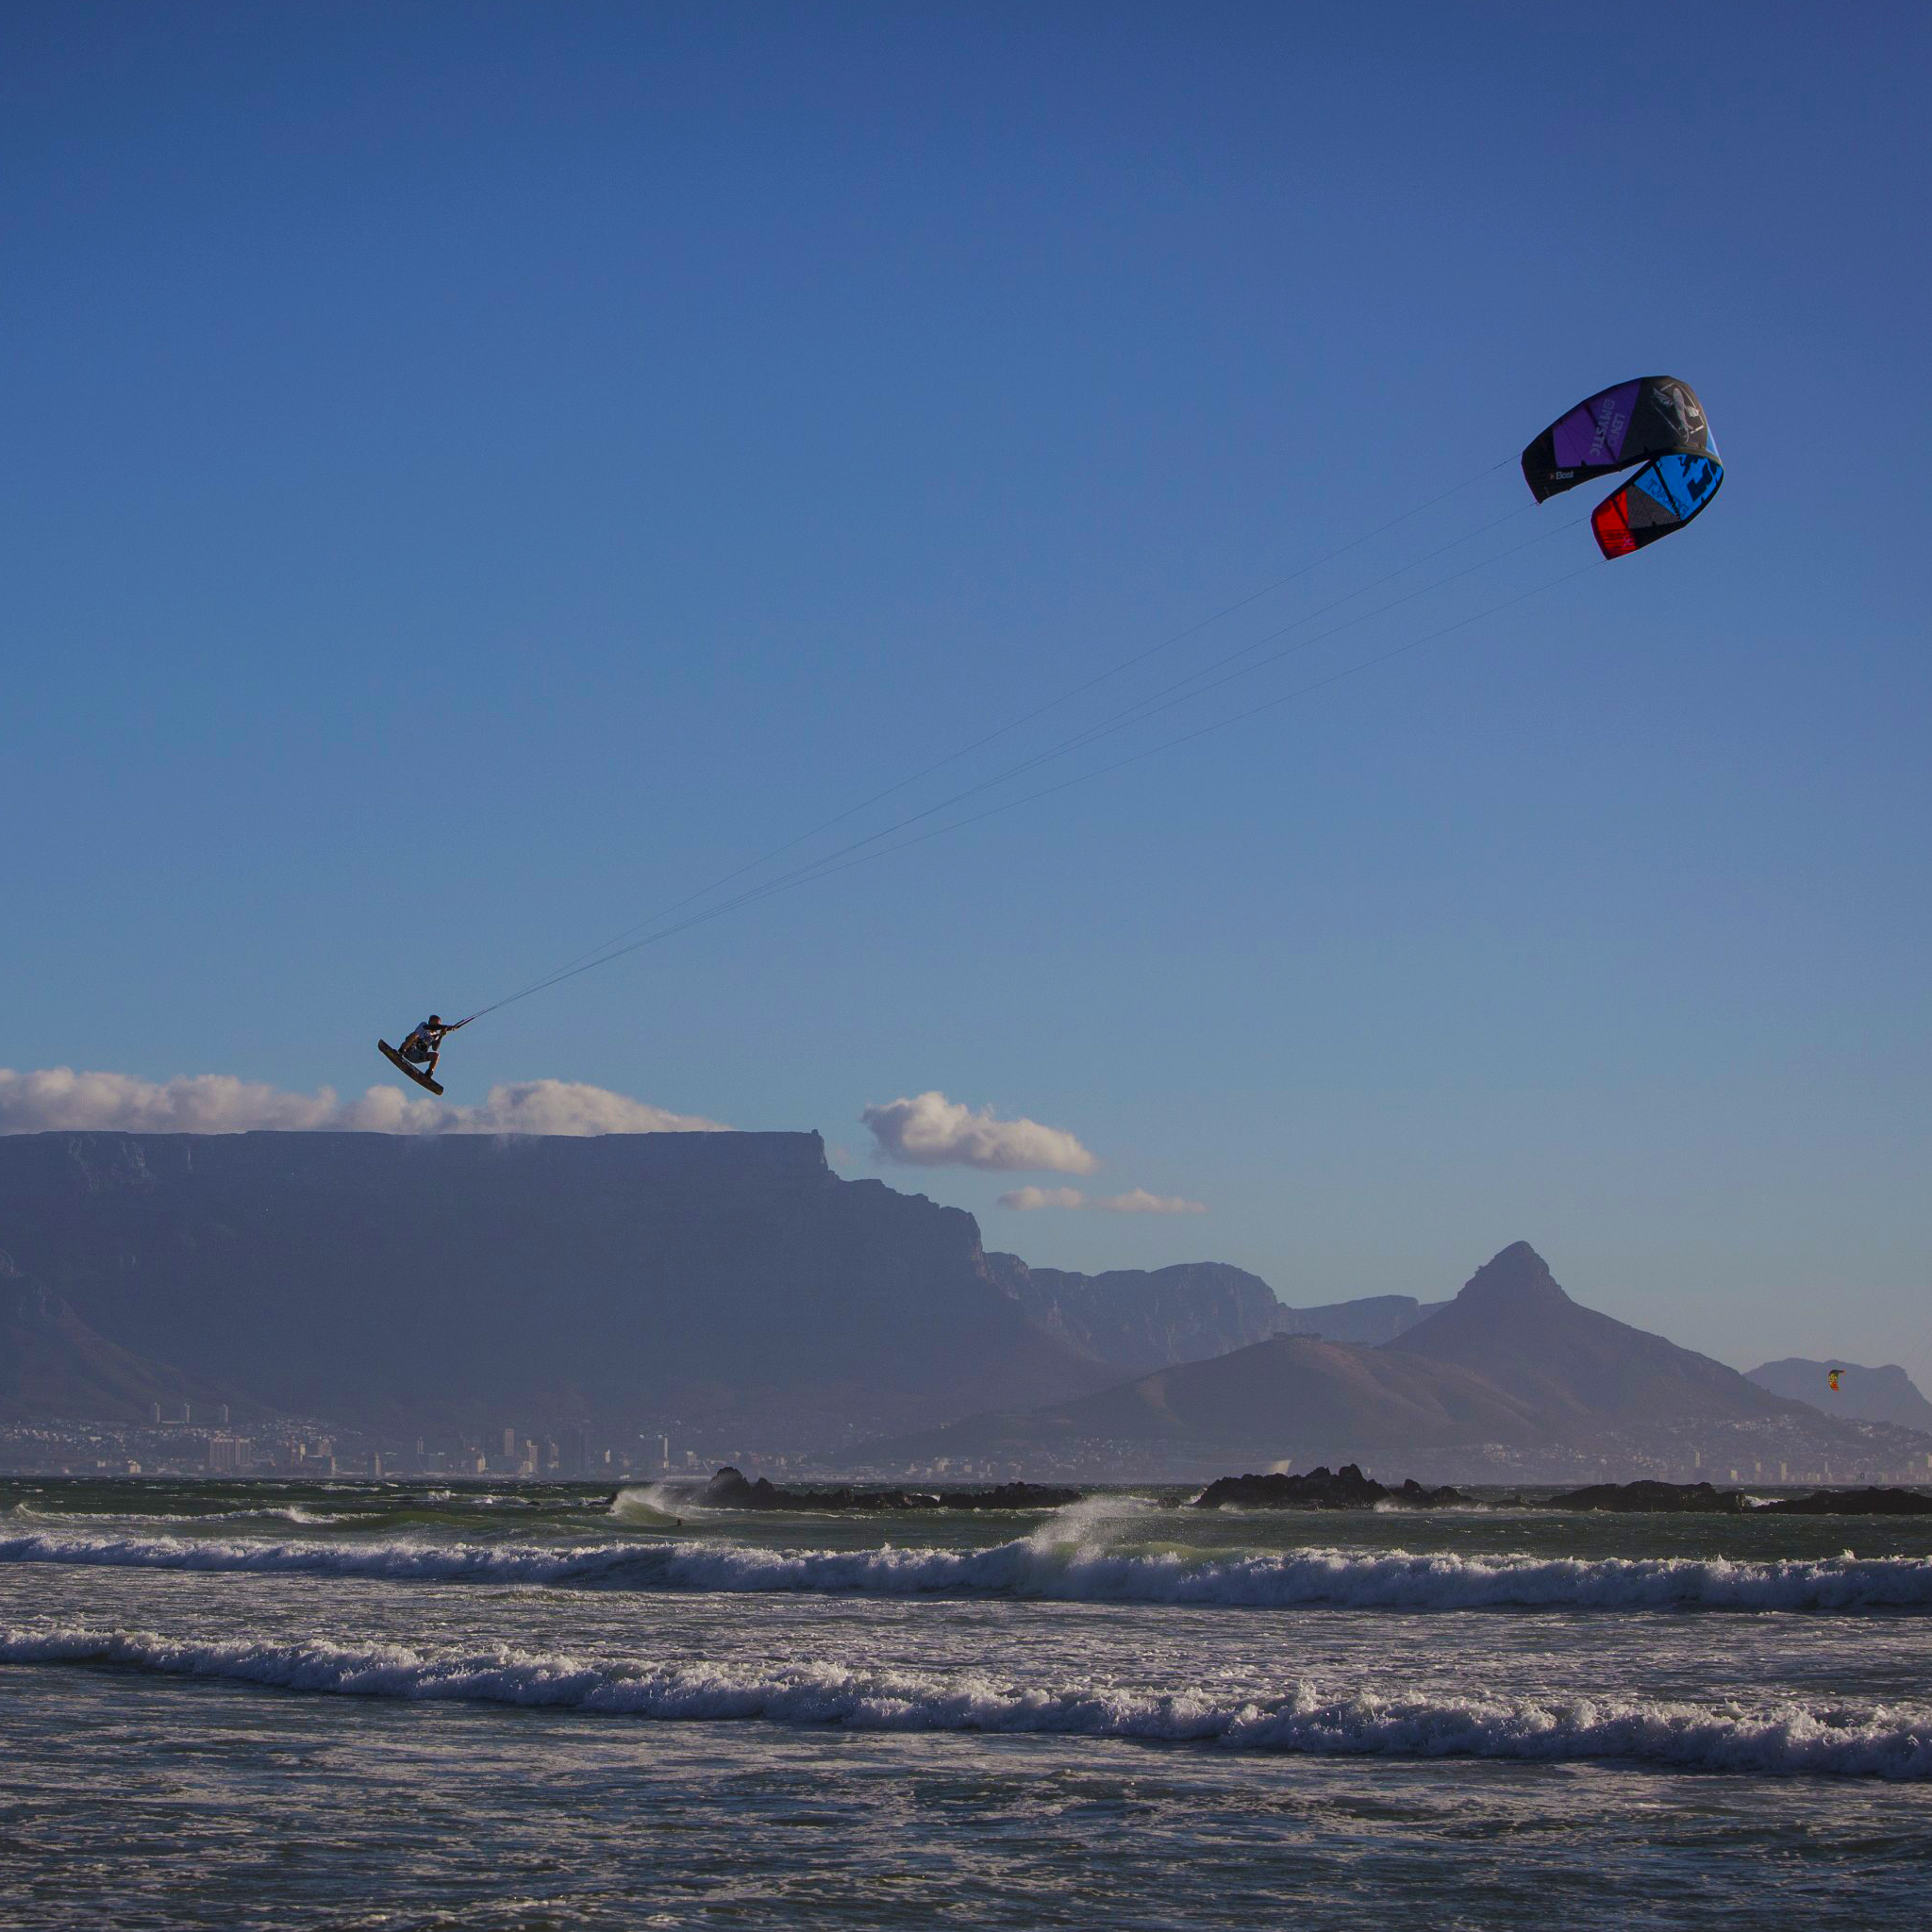 kitesurf wallpaper image - Ruben Lenten megaloop at the Red Bull King of the Air on the Best Extract kite - flying above table mountain    - in resolution: iPad 2 & 3 2048 X 2048